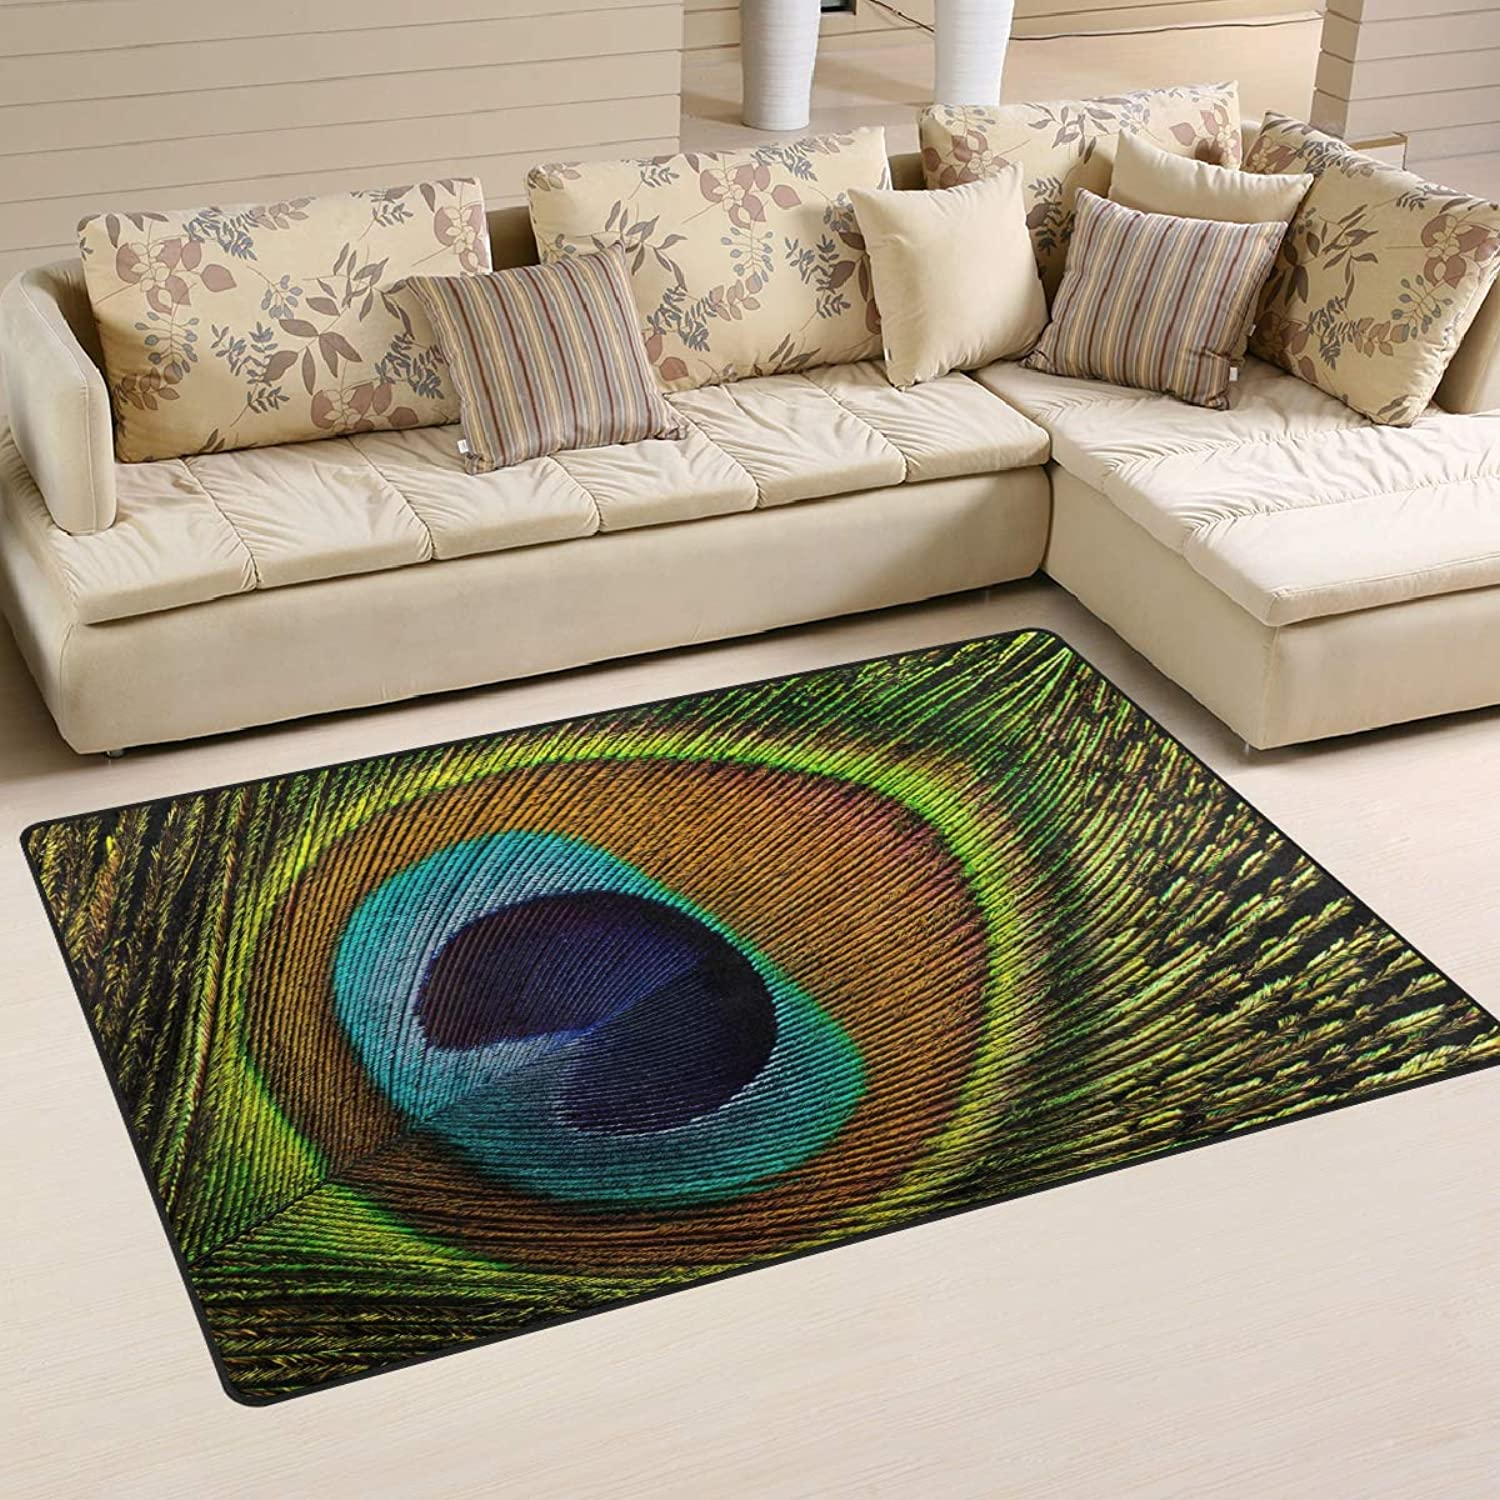 Area Rugs Doormats Peacock Feathers 5'x3'3 (60x39 Inches) Non-Slip Floor Mat Soft Carpet for Living Dining Bedroom Home